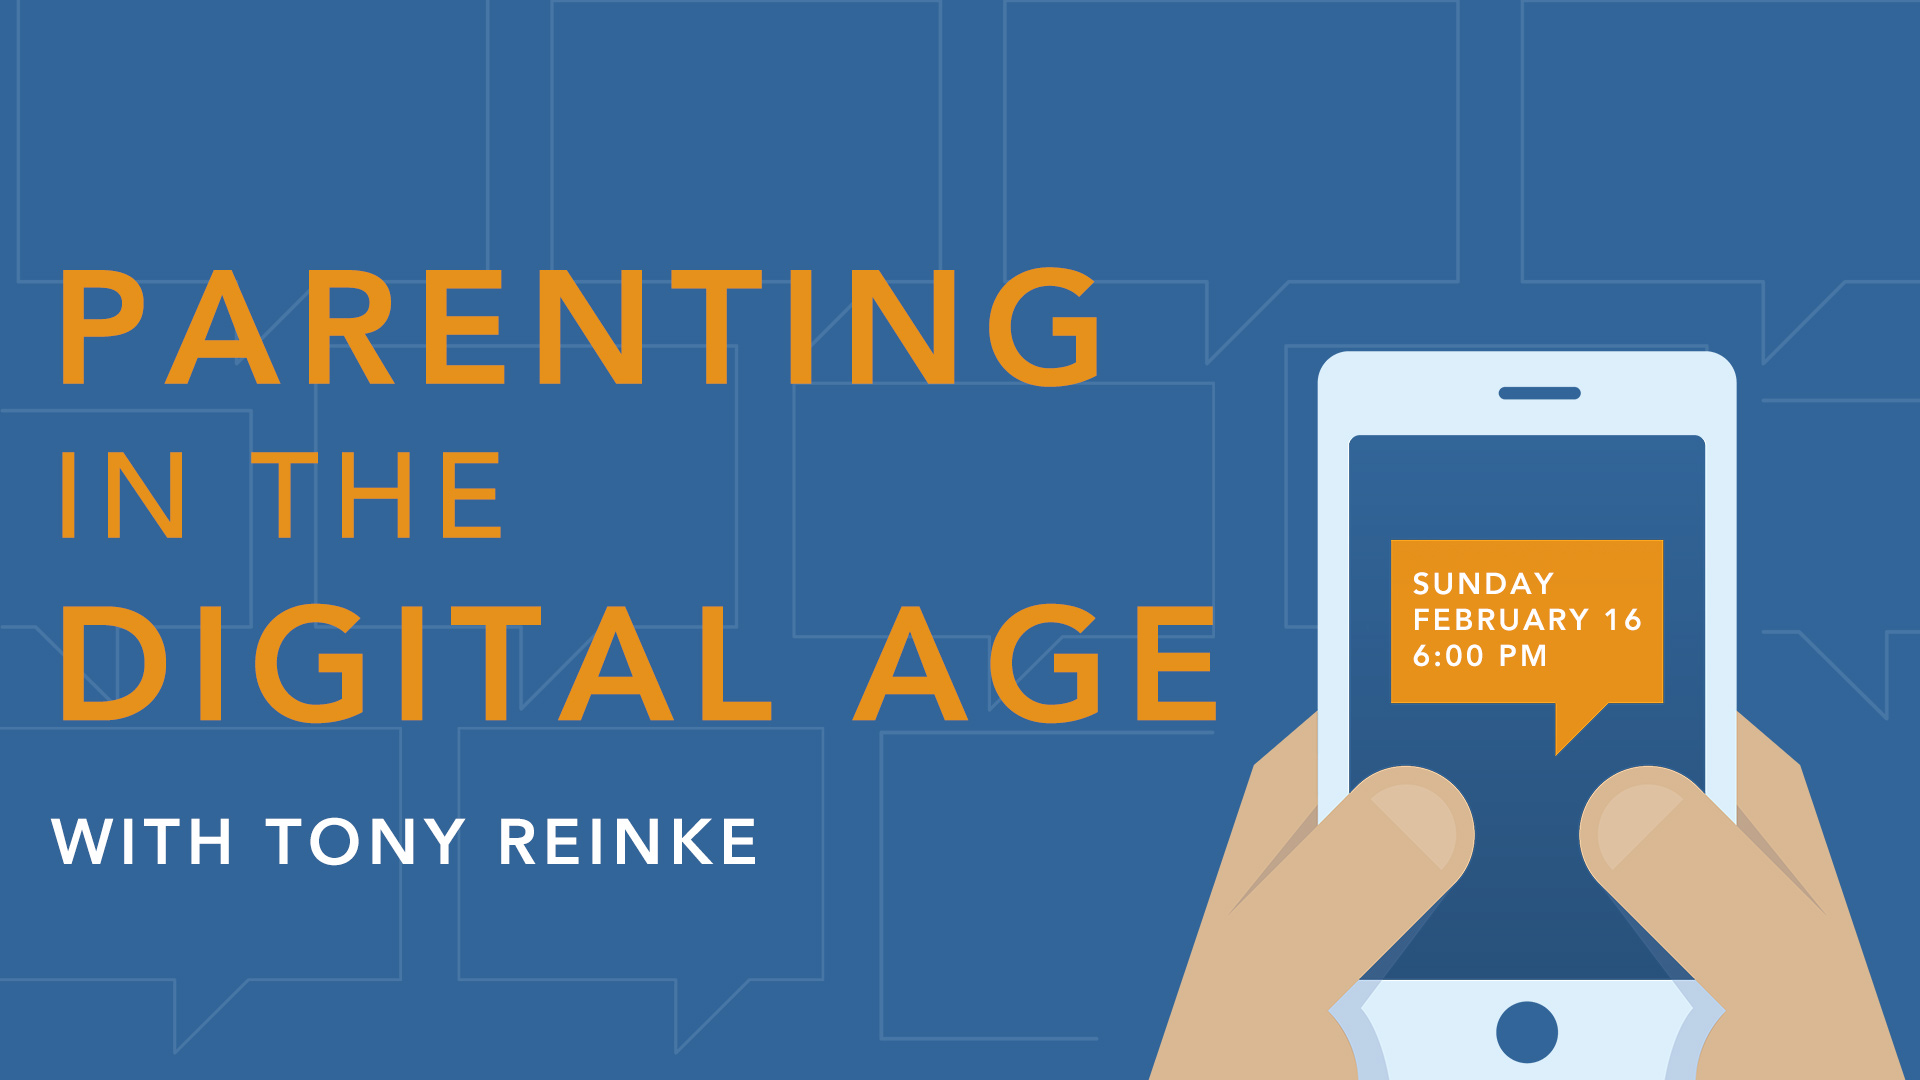 Parenting_in_the_Digital_Age_Wide image